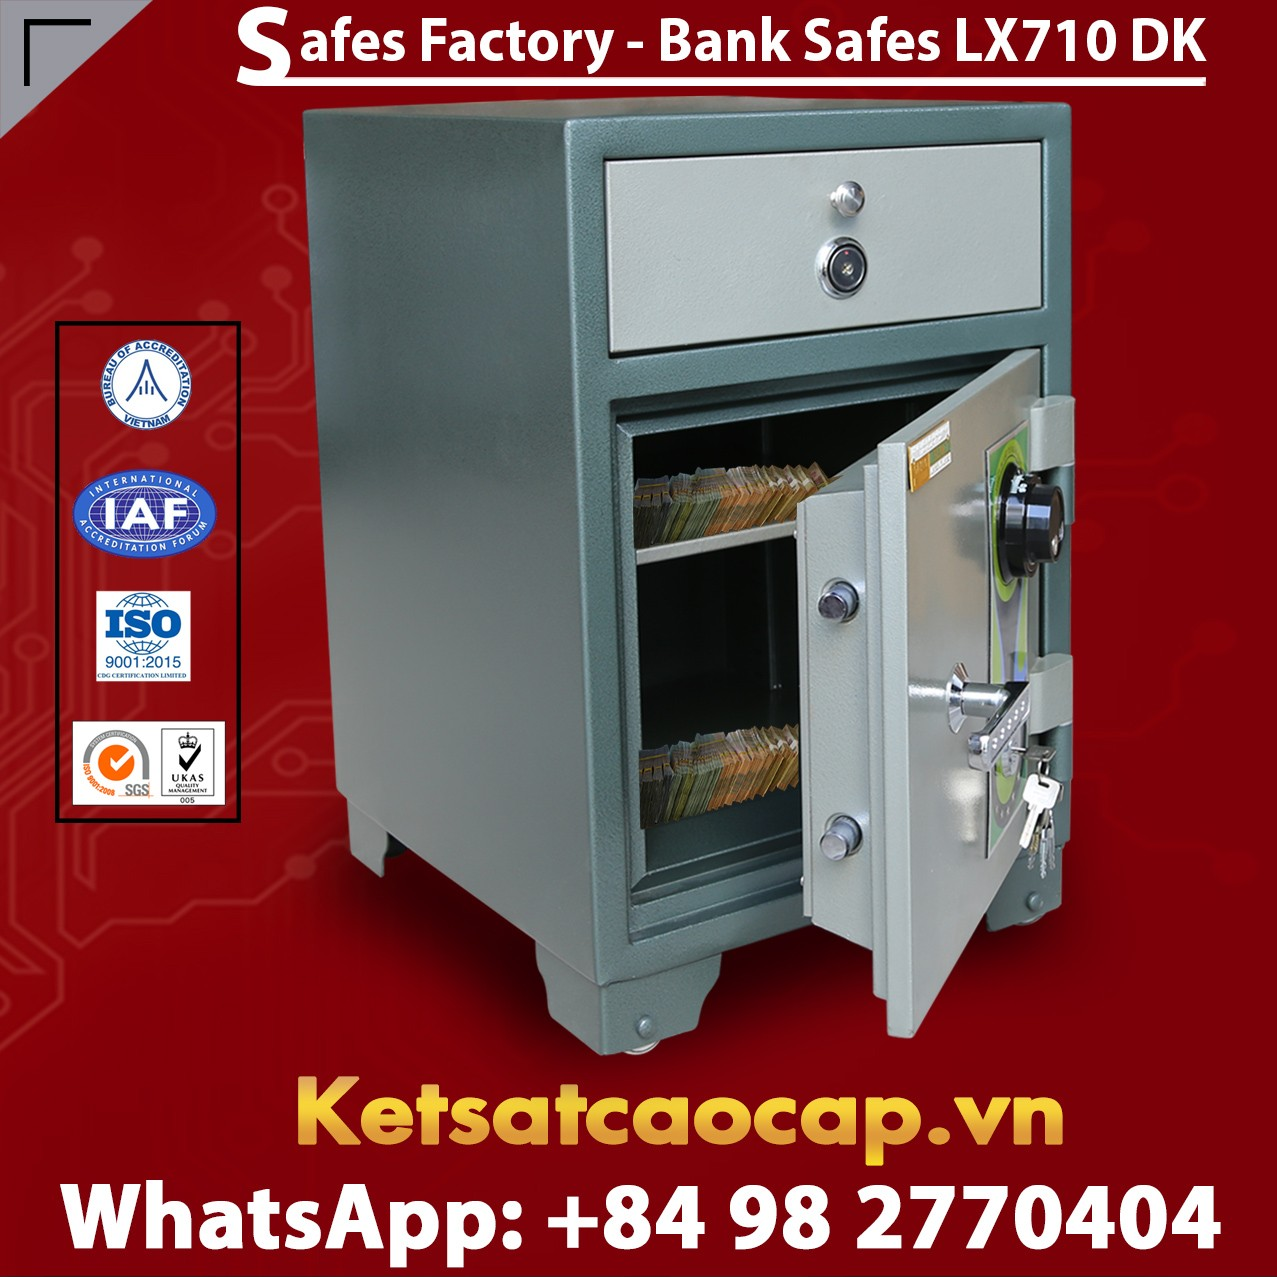 Bank Safes Manufacturers